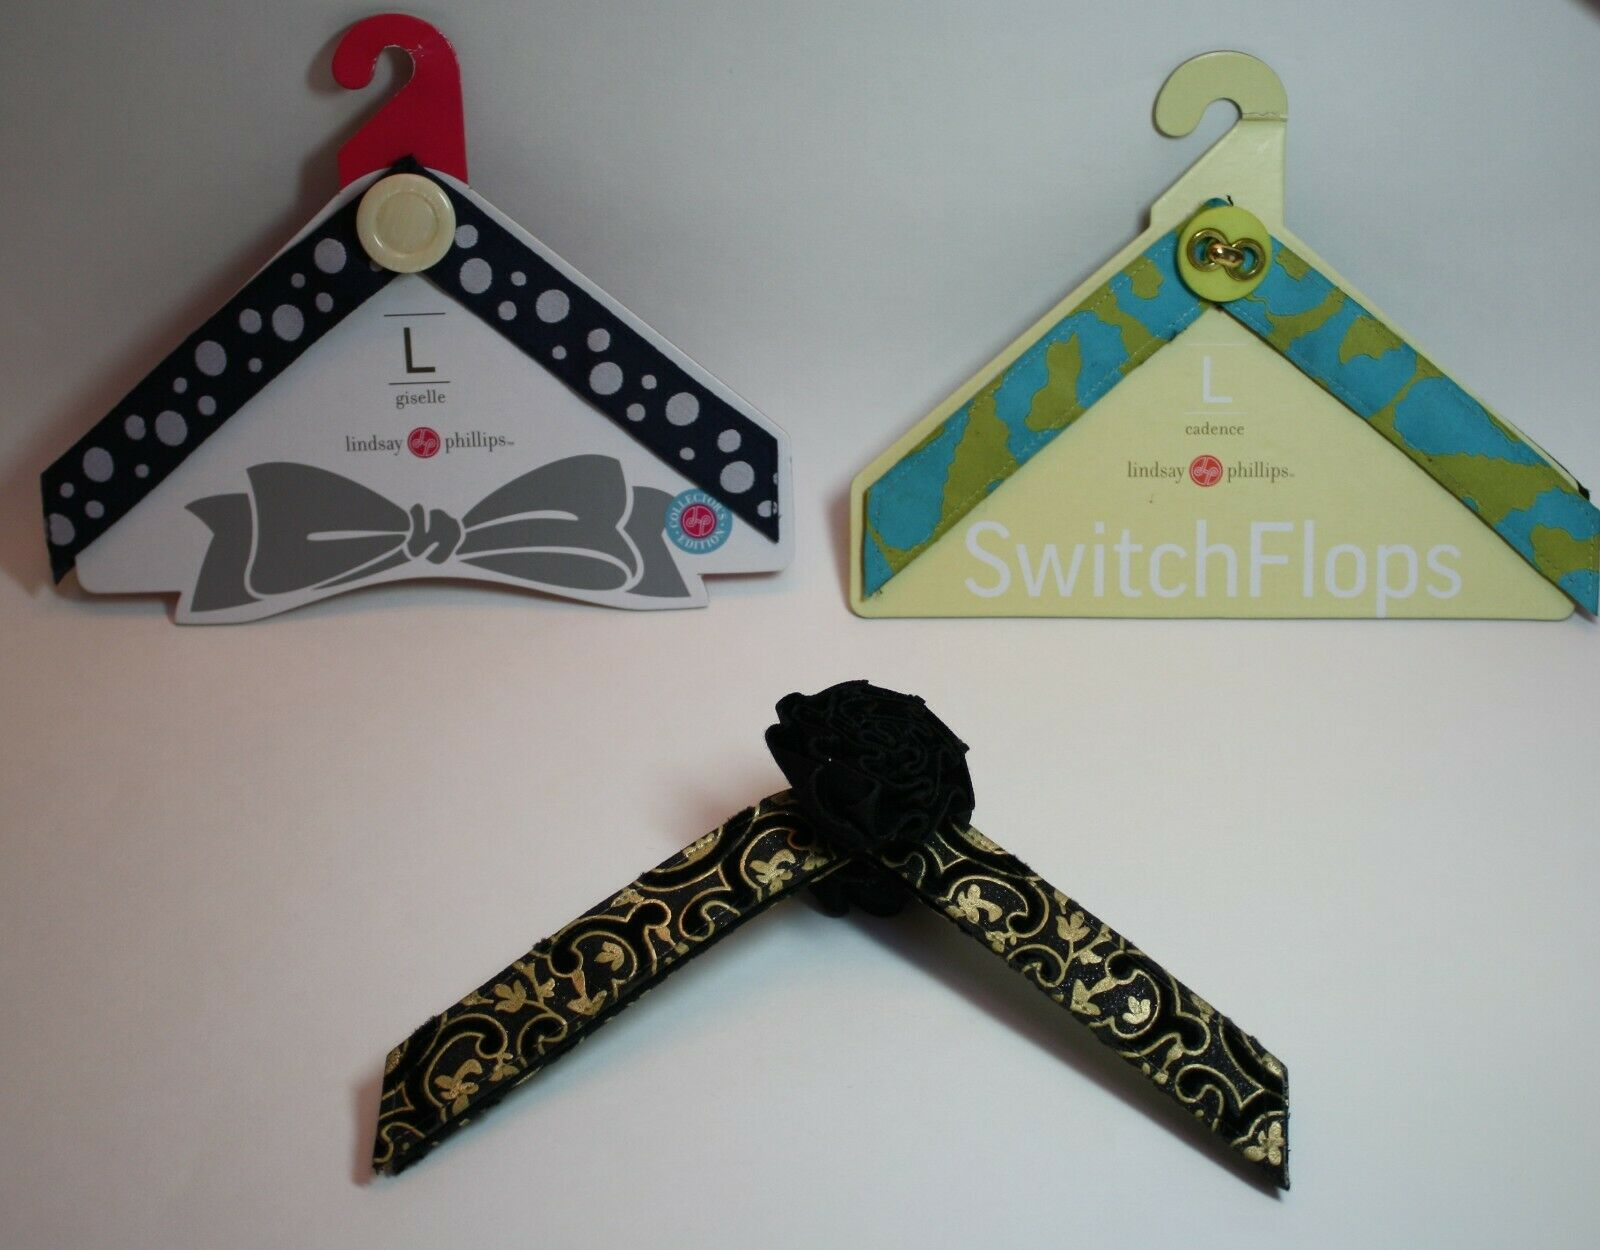 Lot of 3 LINDSAY PHILLIPS SWITCHFLOP STRAPS Size L for Switch Flops Sandals